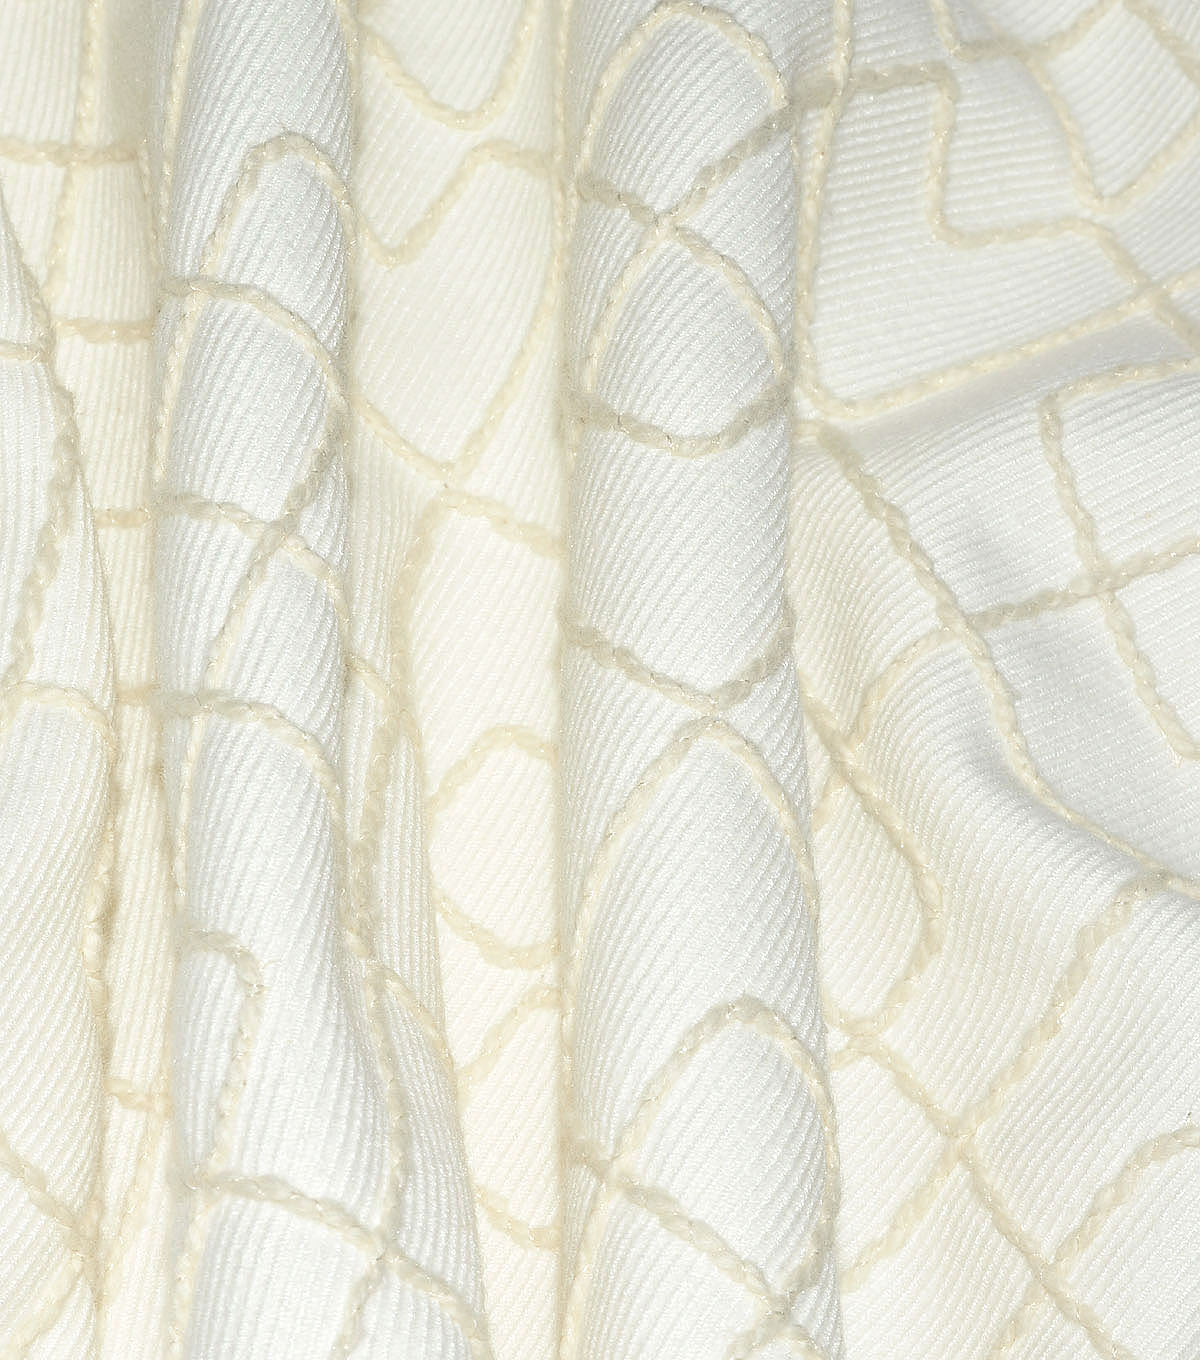 Ellen DeGeneres Embroidery Fabric 54\u0027\u0027-Gentilly Embroidery Parchment